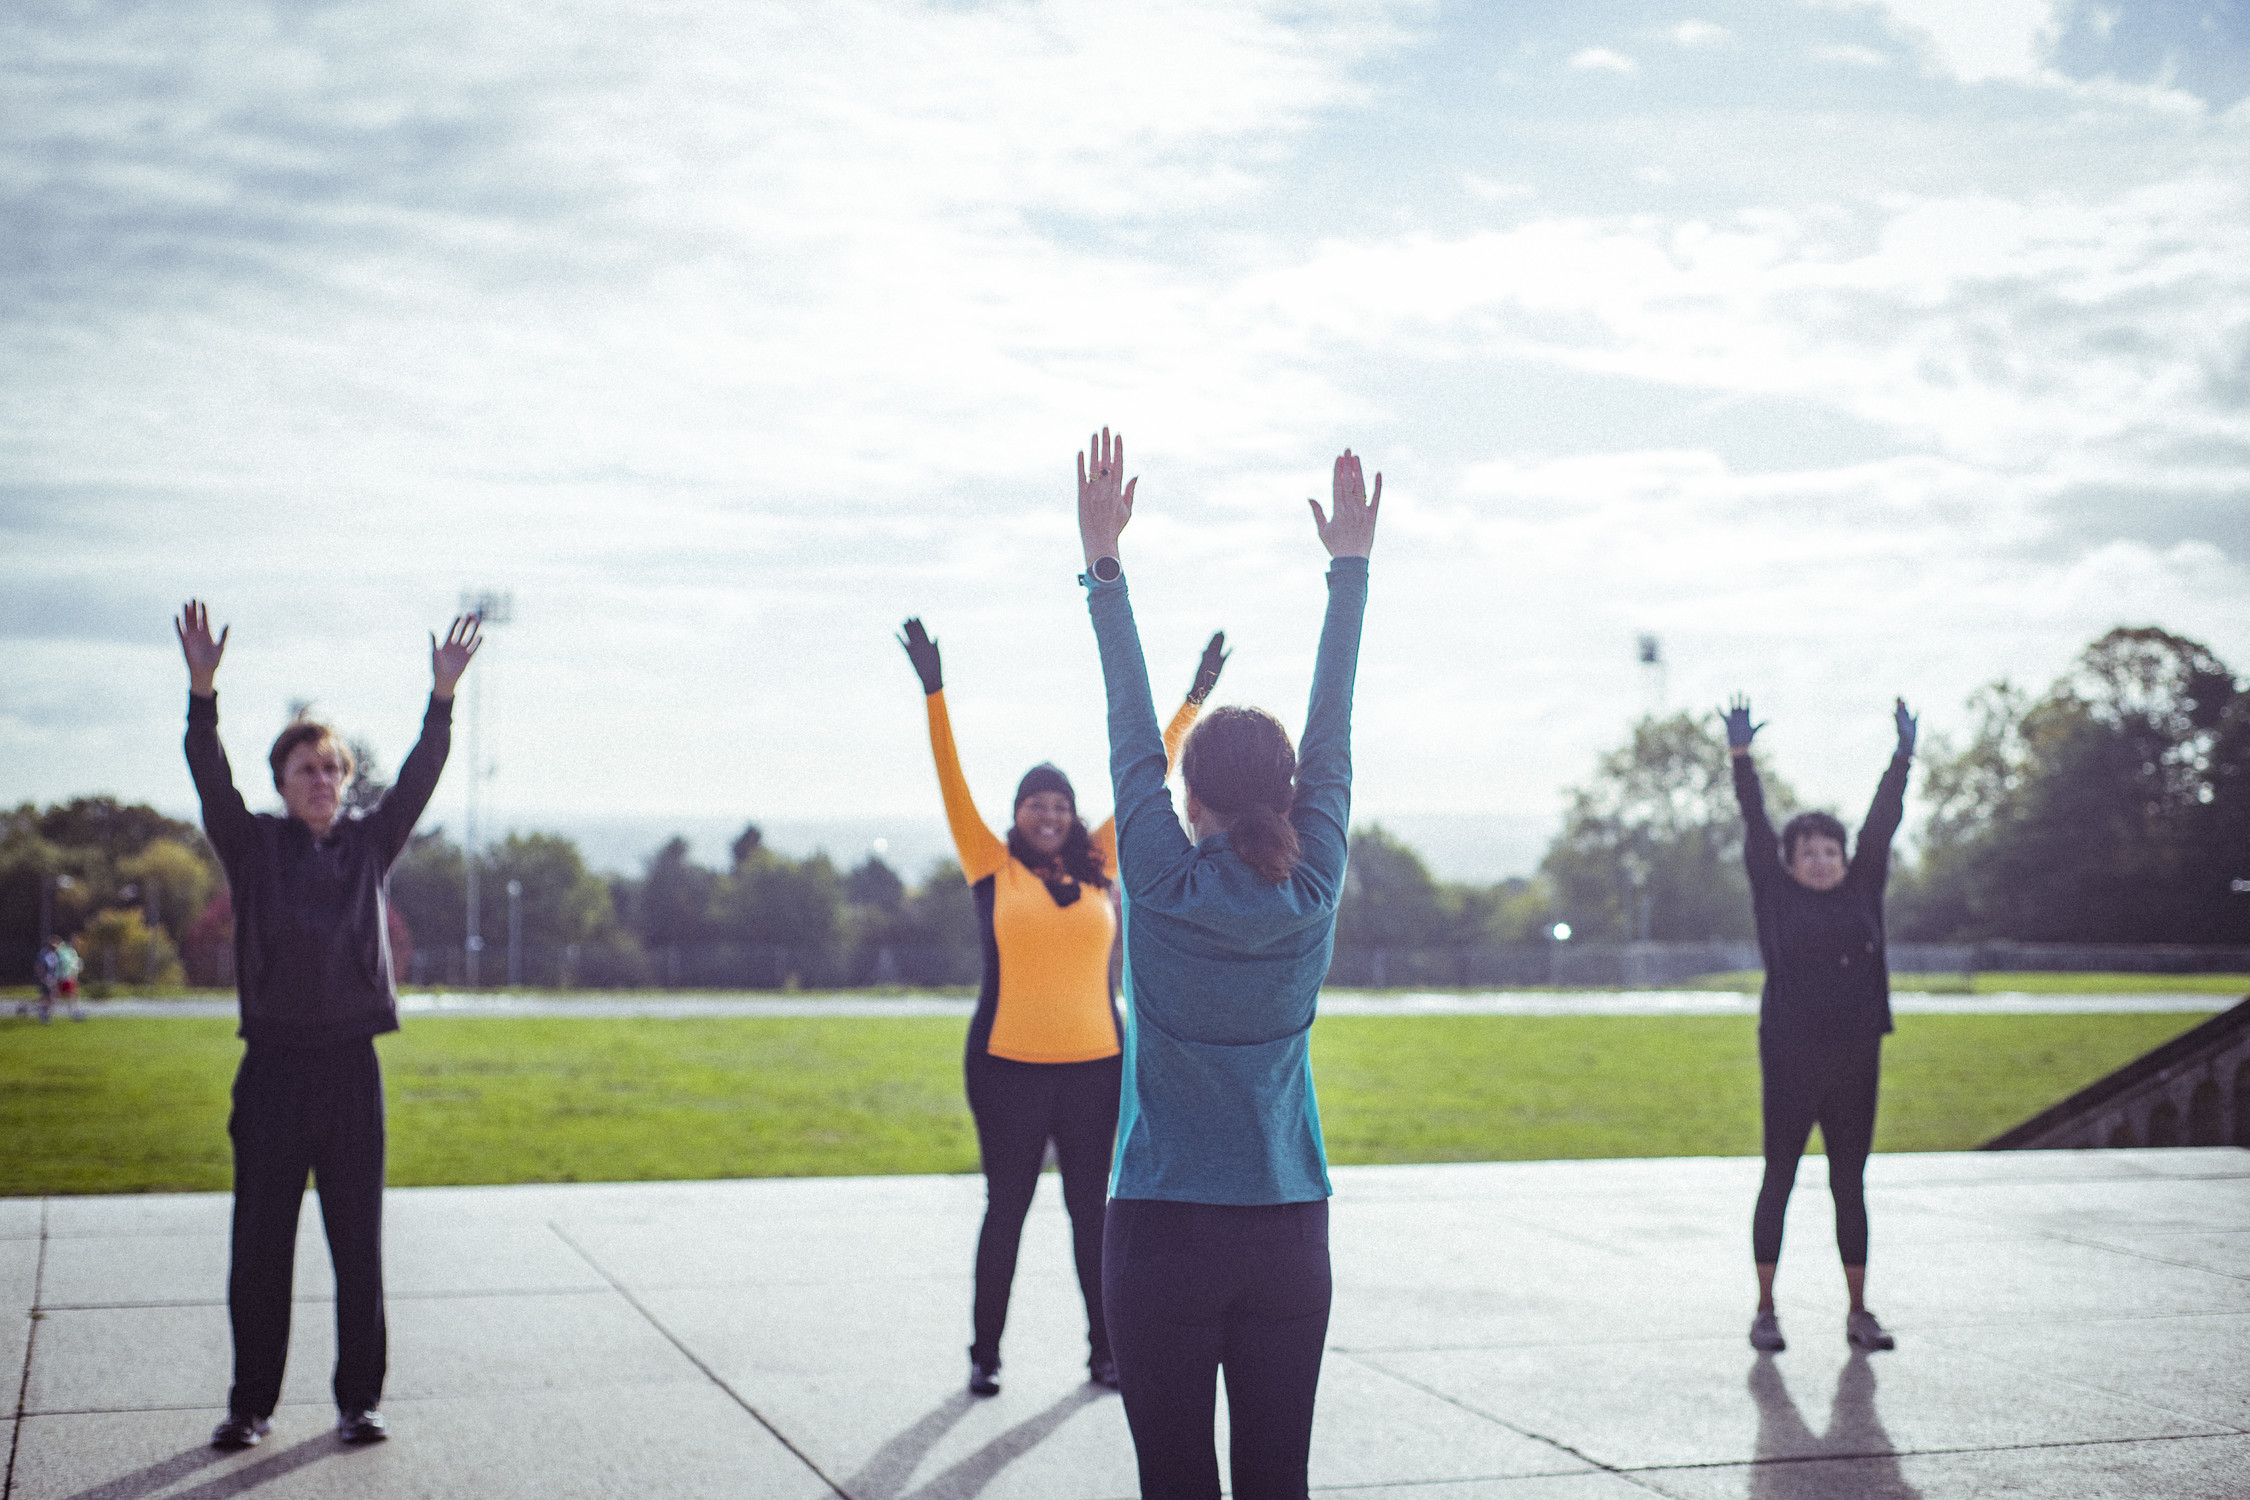 Group exercising in public park